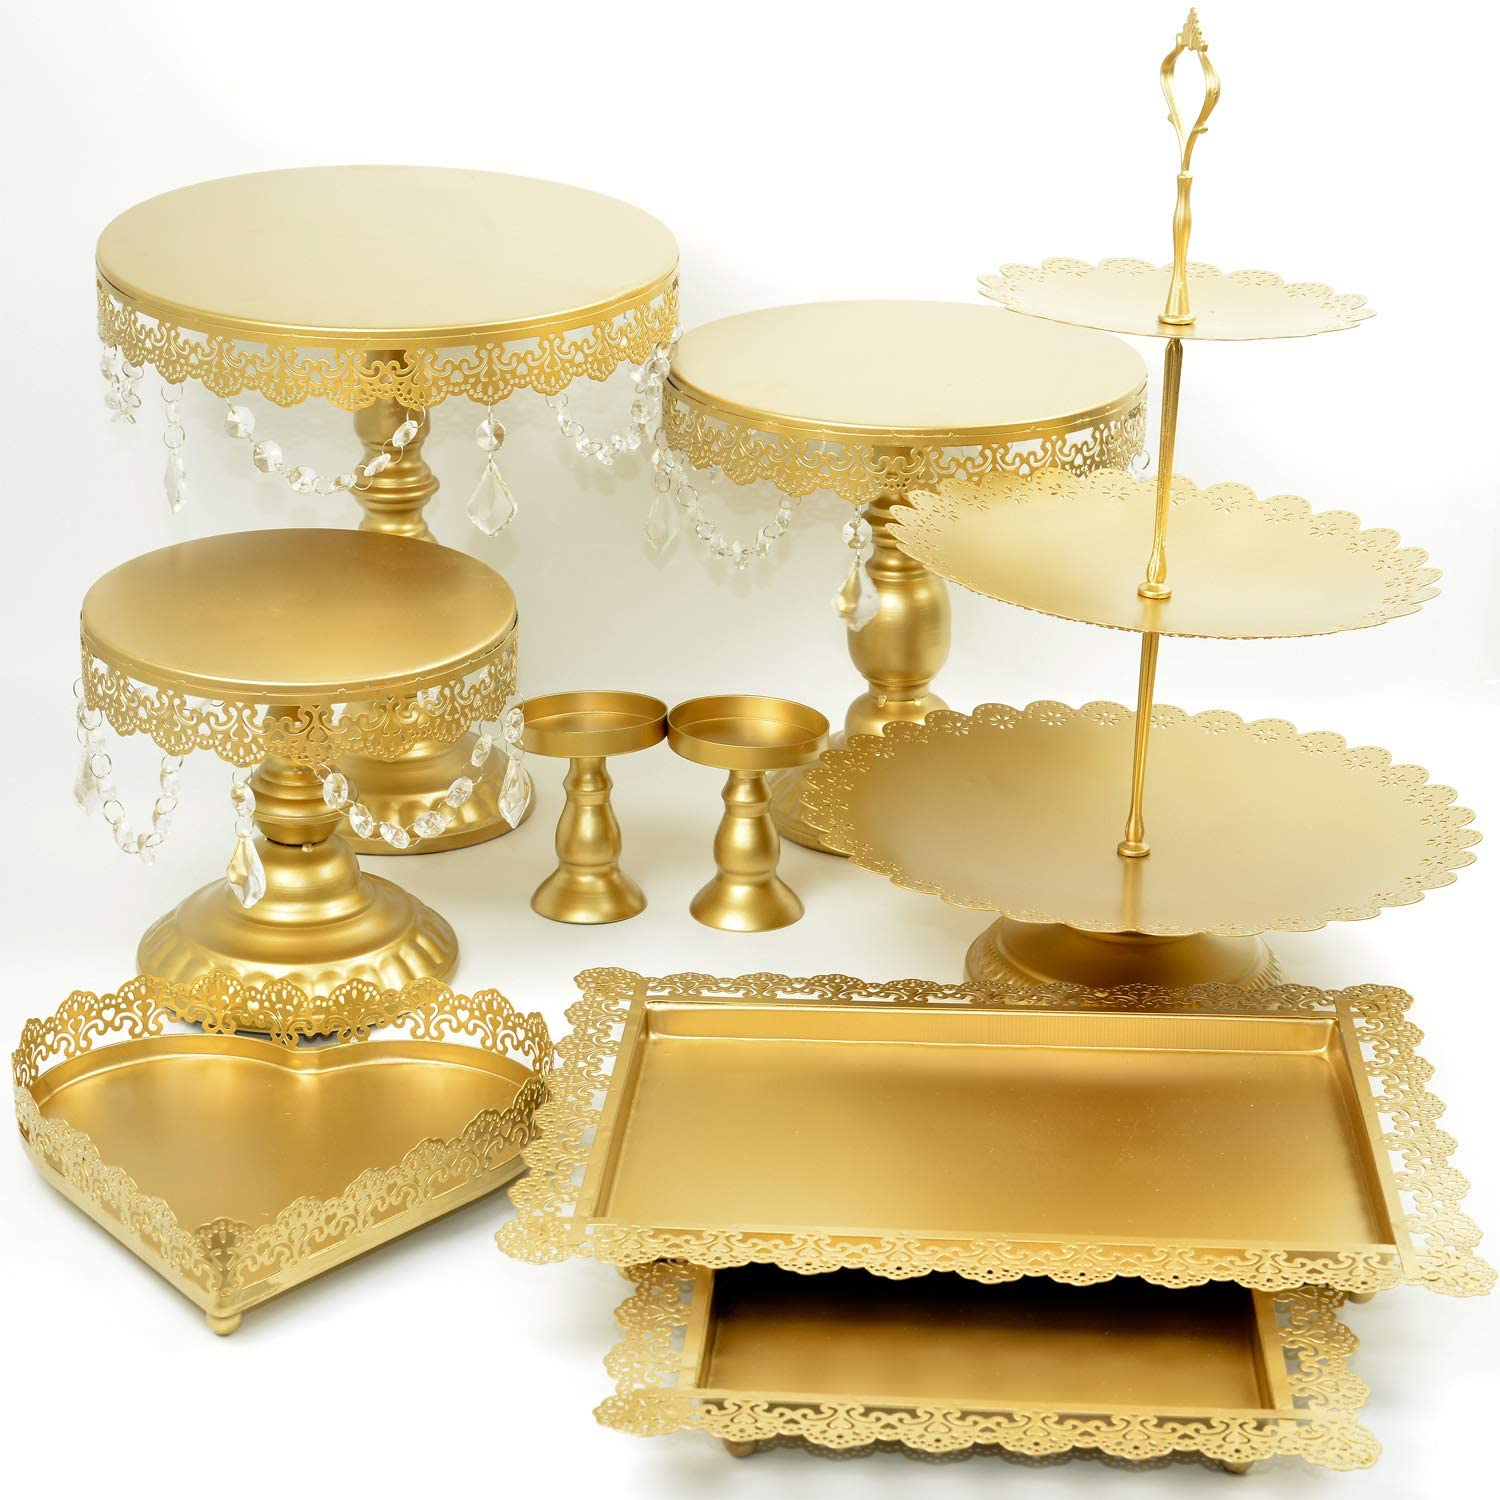 Proshopping 9 Set Antique Metal Cake Stand, Classical Round Cupcake Holder, Cake Plate Tray, Cookie Pedestal Display Tower, for Wedding Birthday Party, with Crystals Pendants and Beads, Gold